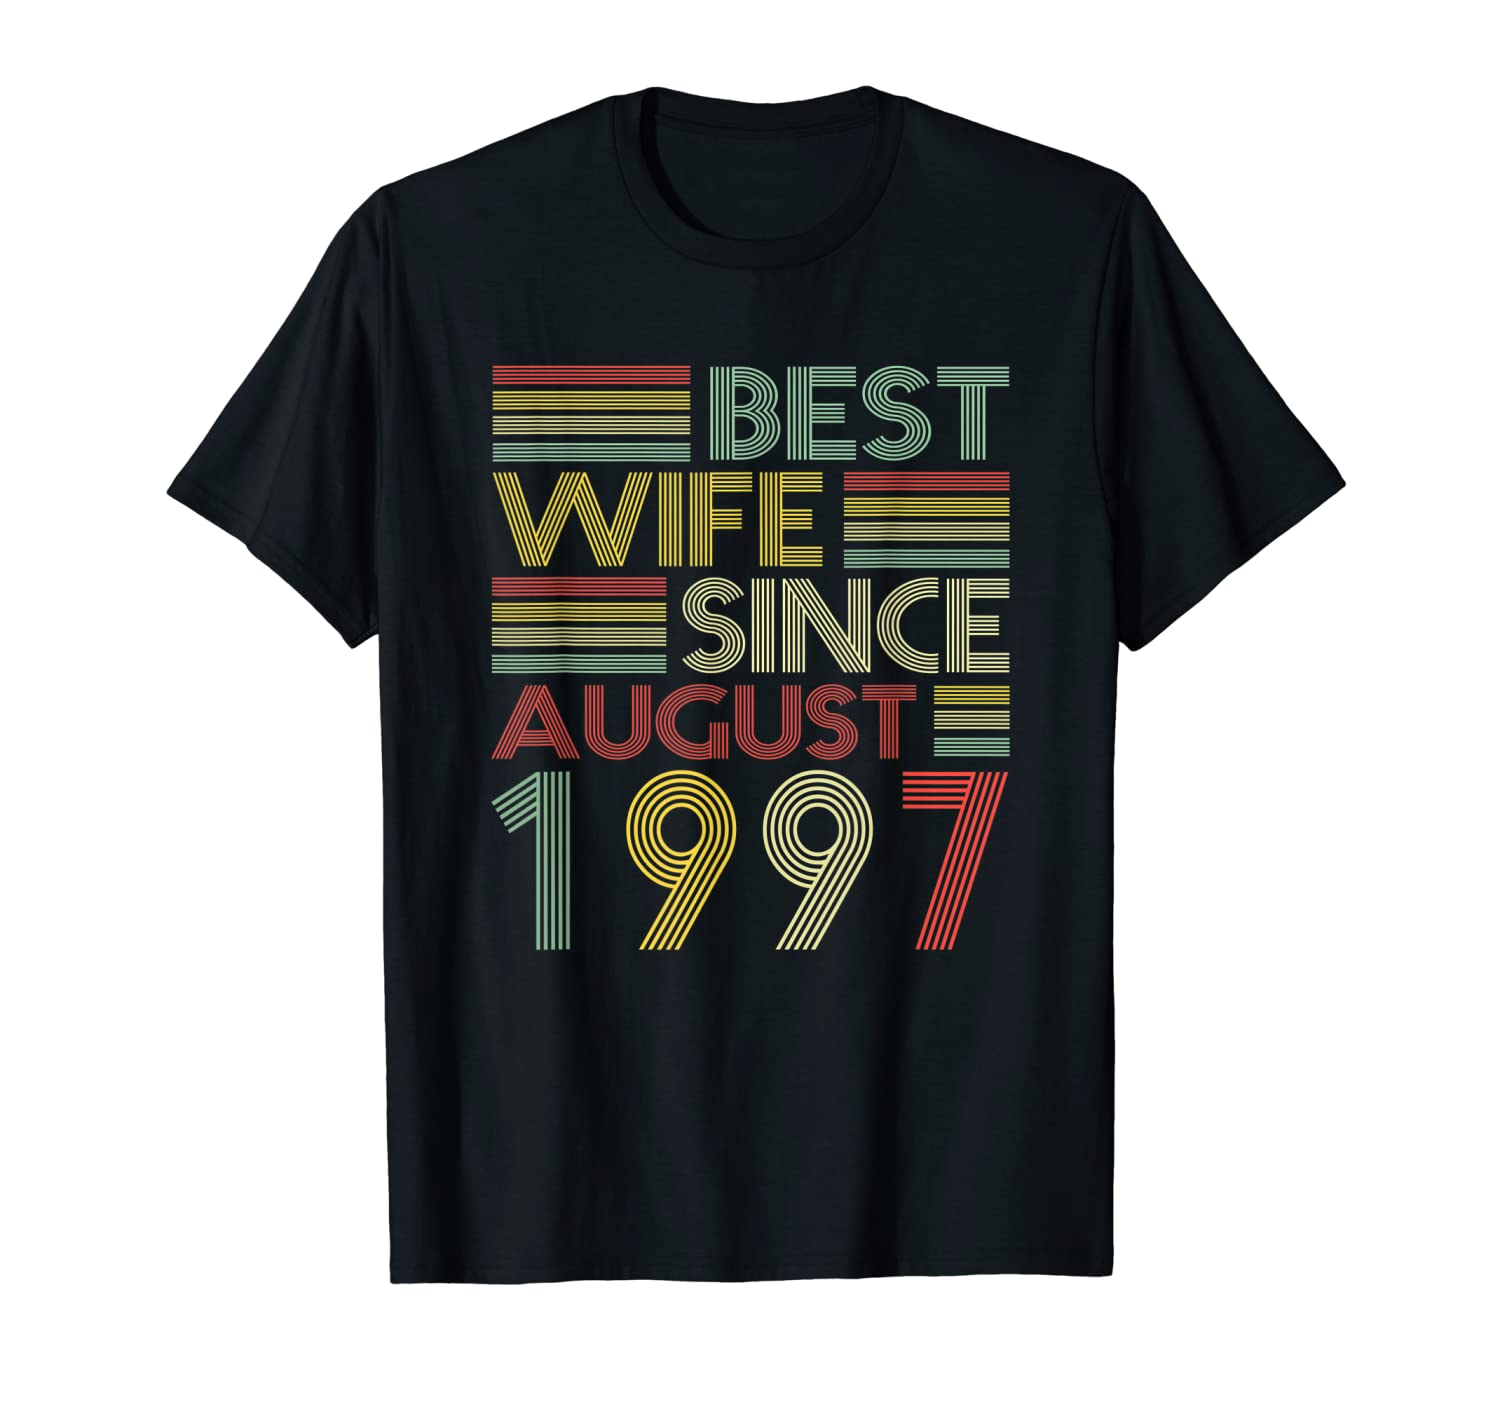 22nd Wedding Anniversary Gift Ideas: 22nd Wedding Anniversary Gifts Wife Since August 1997 Men